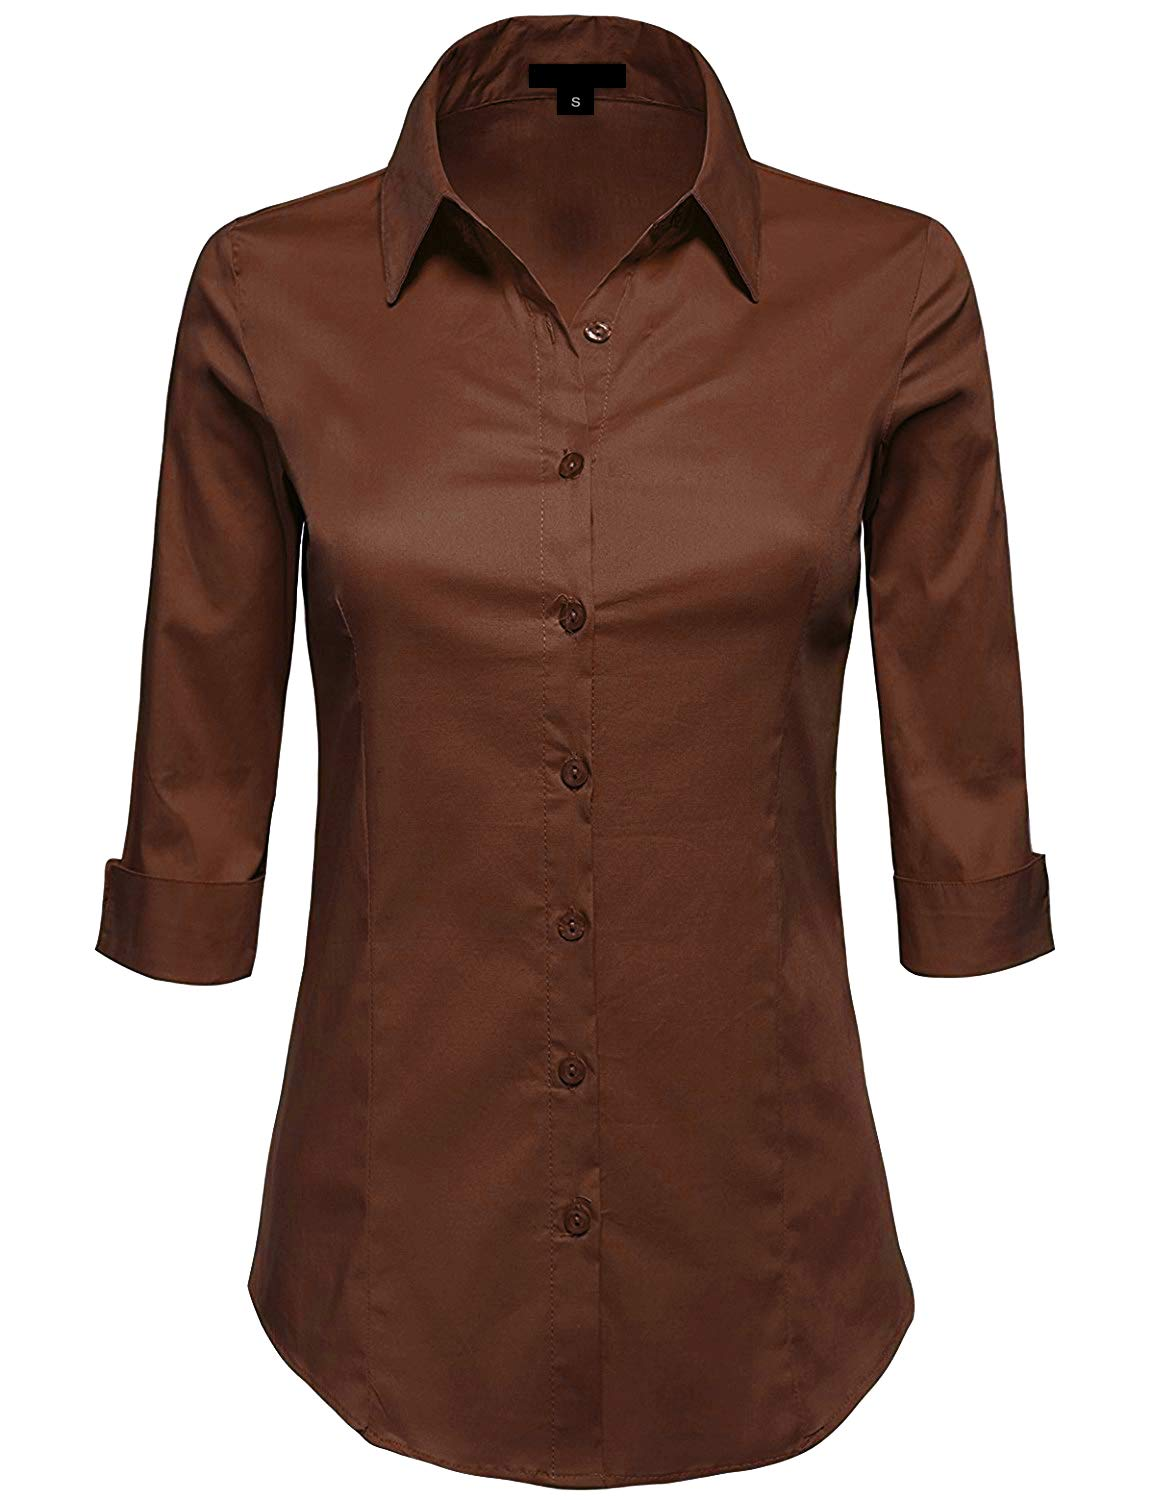 MAYSIX APPAREL Plus Size 3/4 Sleeve Stretchy Button Down Collar Office Formal Shirt Blouse For Women BROWN 1XL